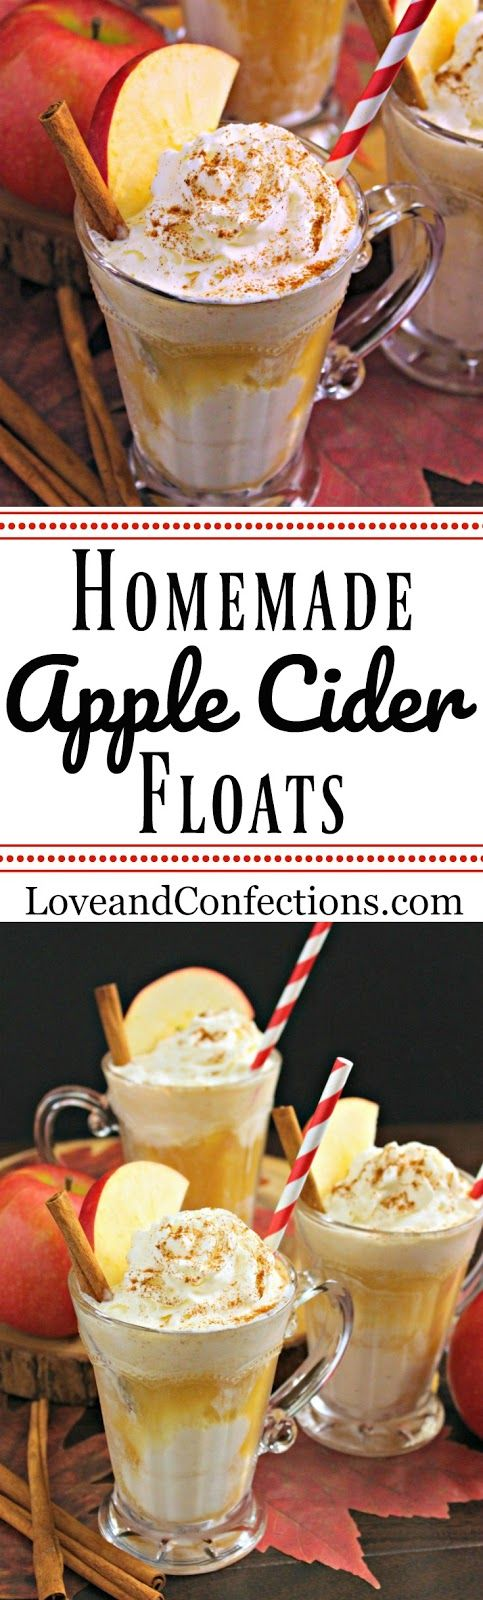 Homemade Apple Cider Floats from LoveandConfections.com with @dixiecrystals #ad